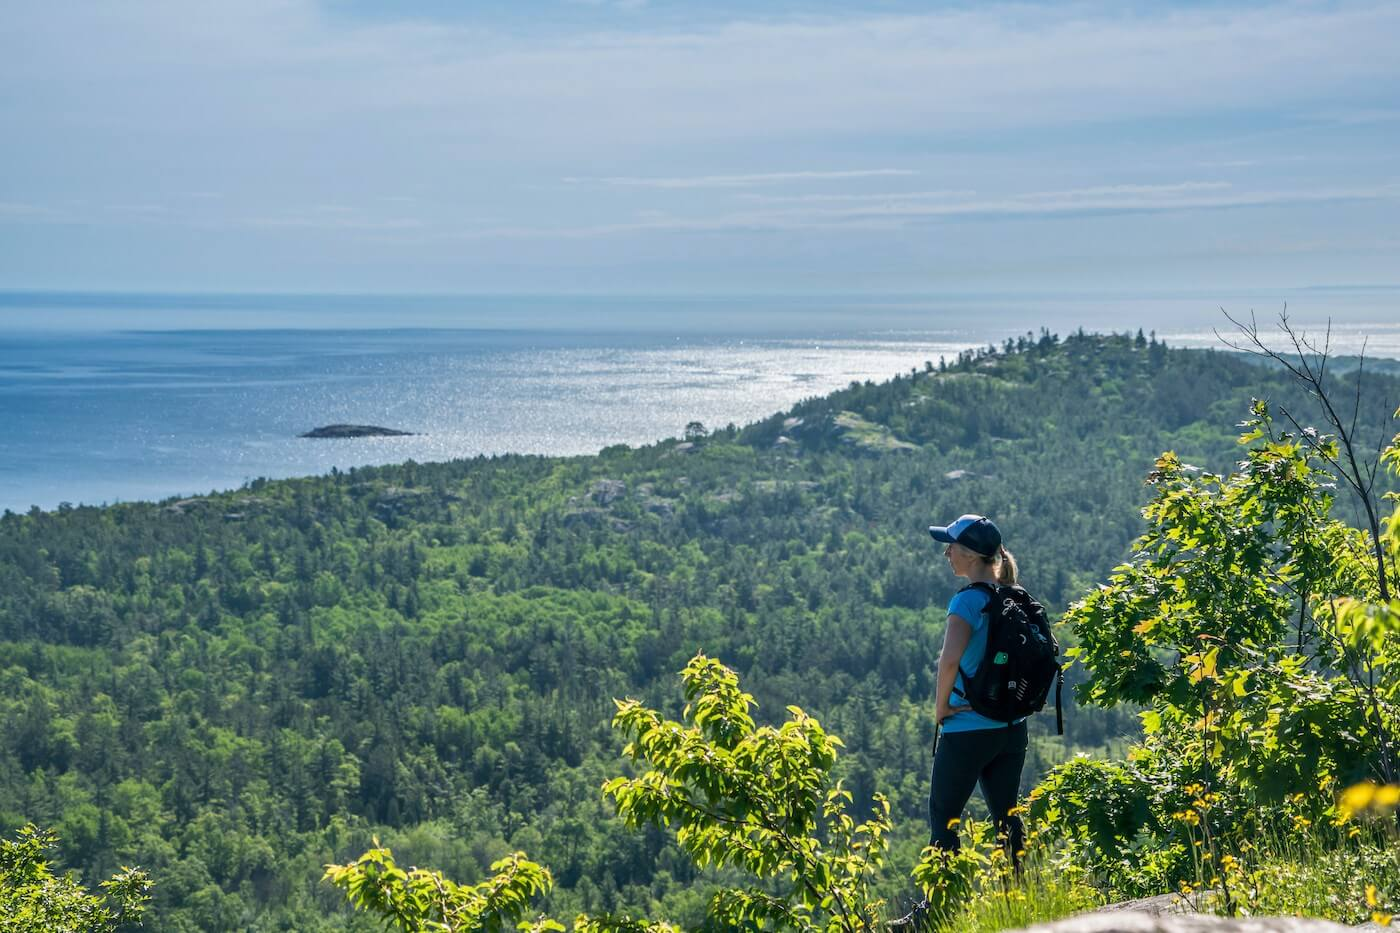 hiking near Marquette Mountain in the summer